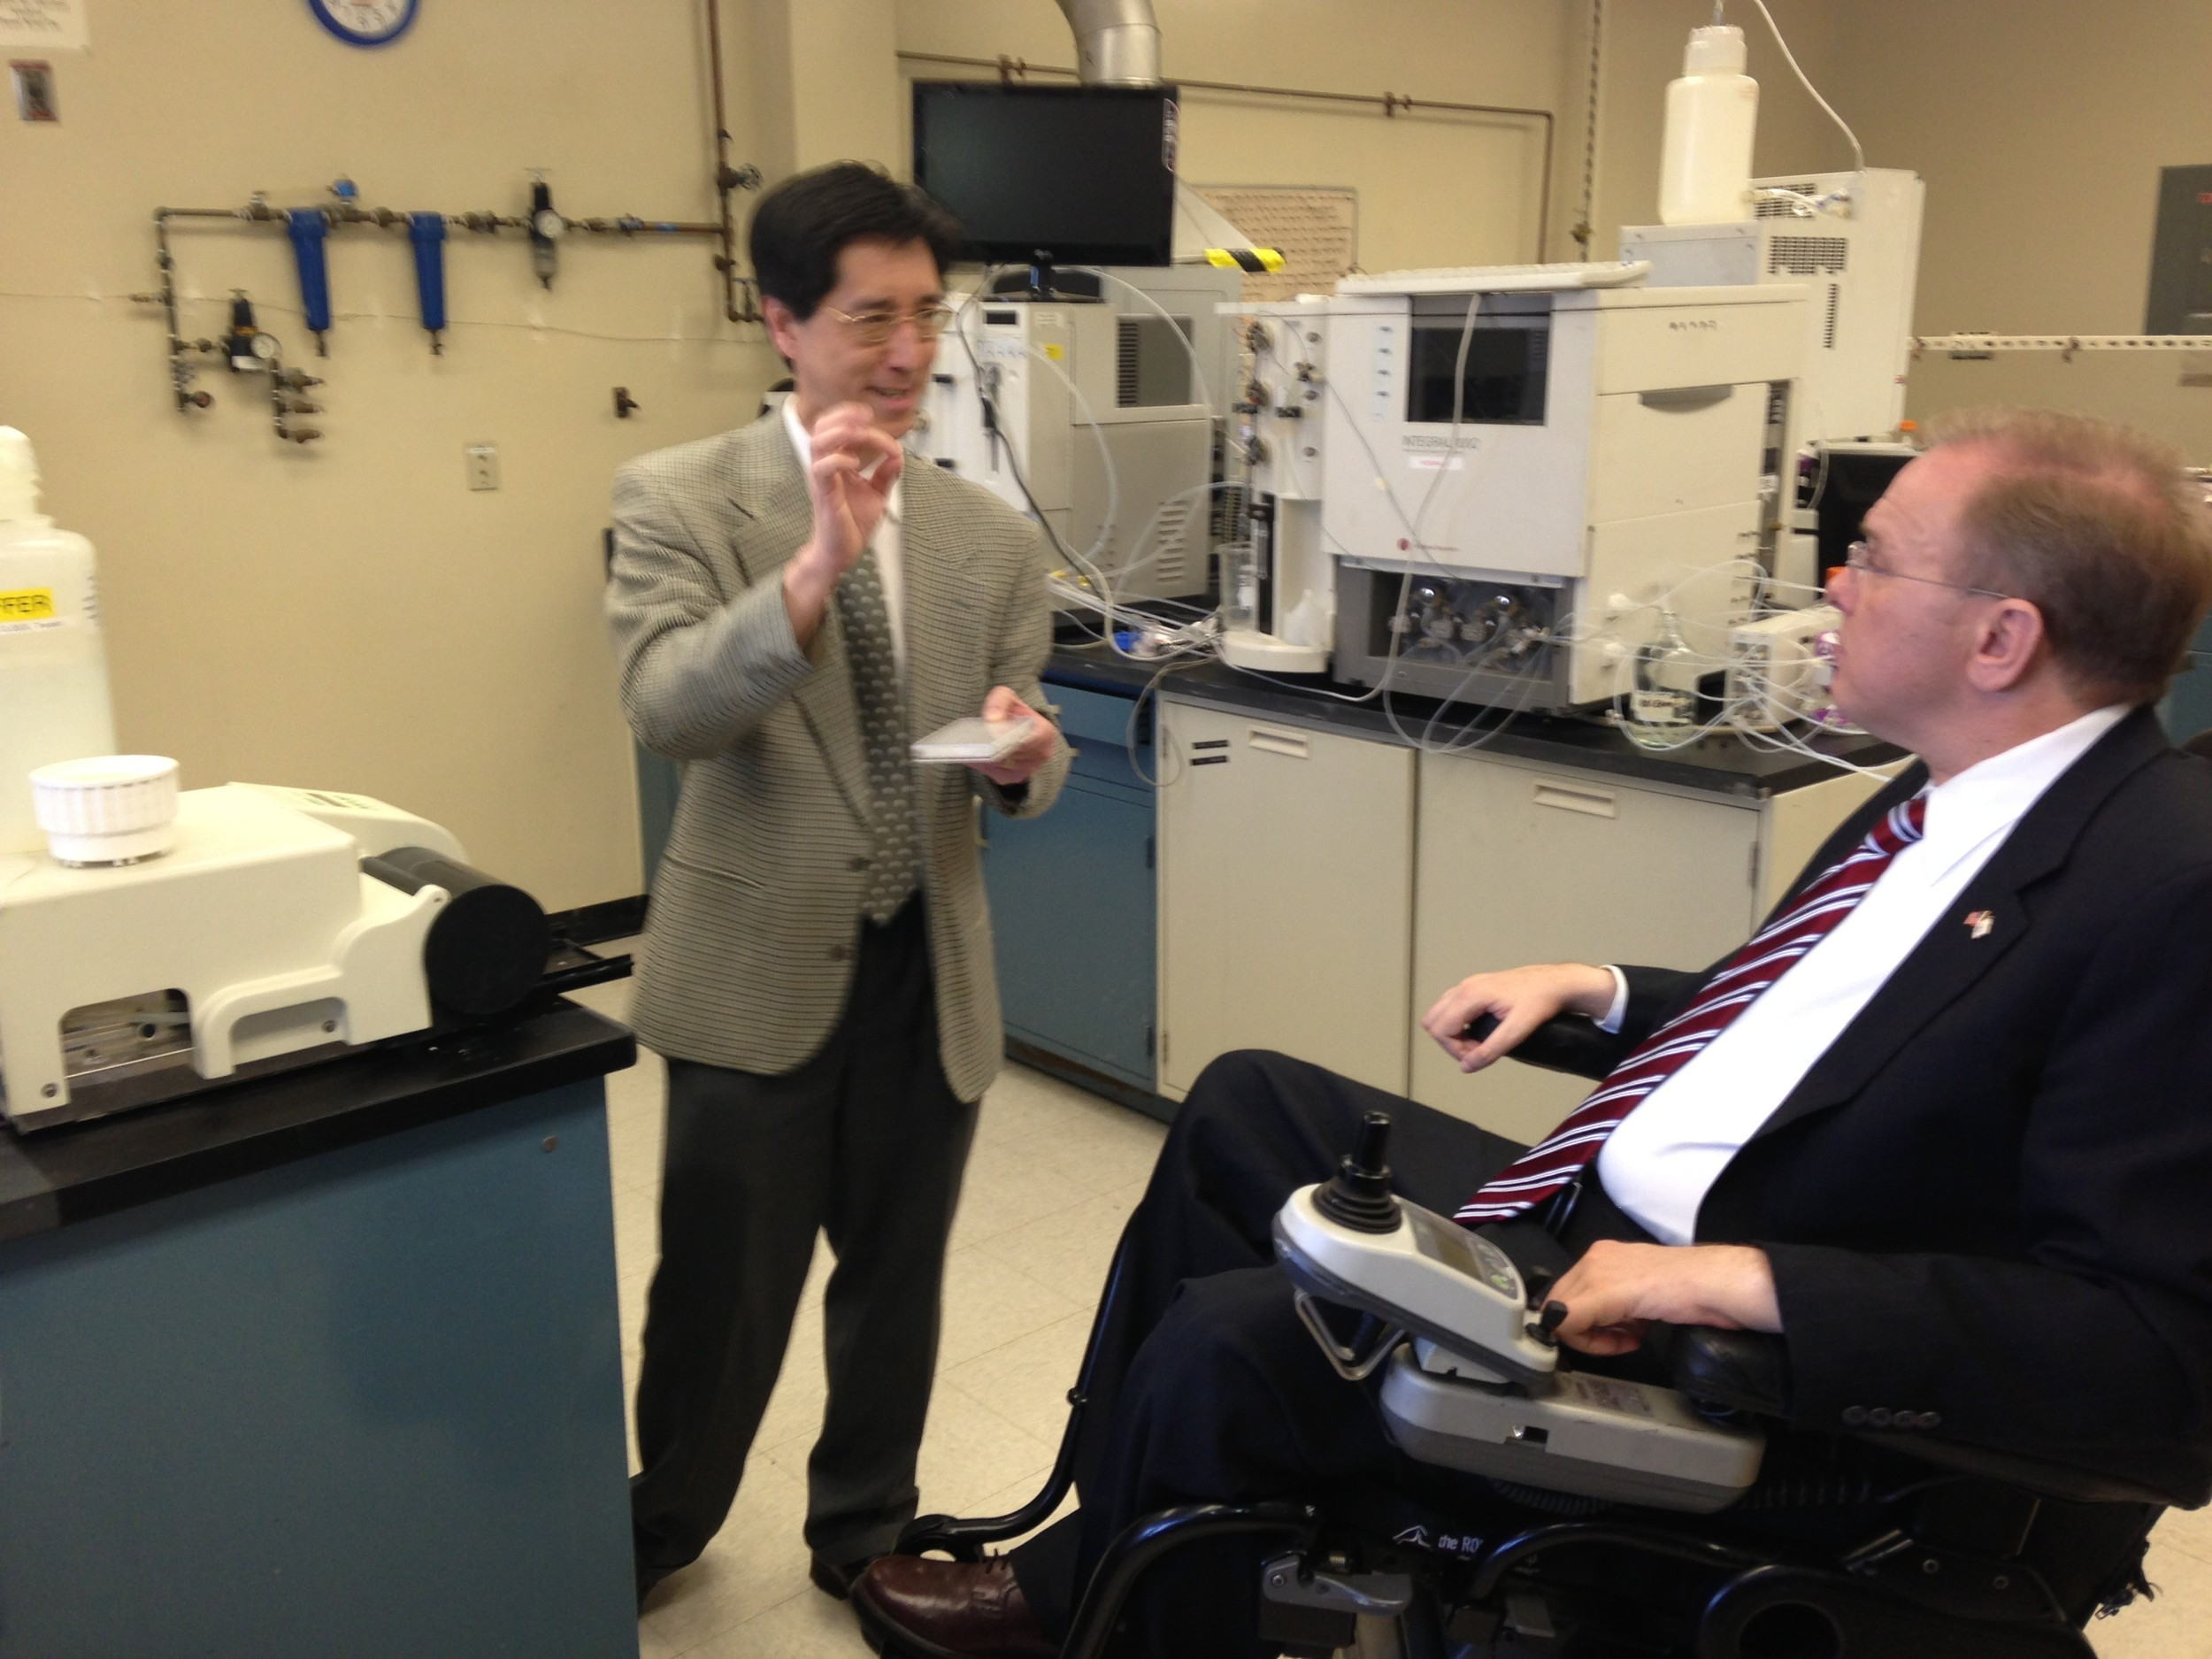 Dr. Yow-Pin Lim talks with Rep. Jim Langevin at ProThera Biologics' new commercial lab facility at the former Fuji Film building, where Slater Technology Fund has created a commercial lab incubator.